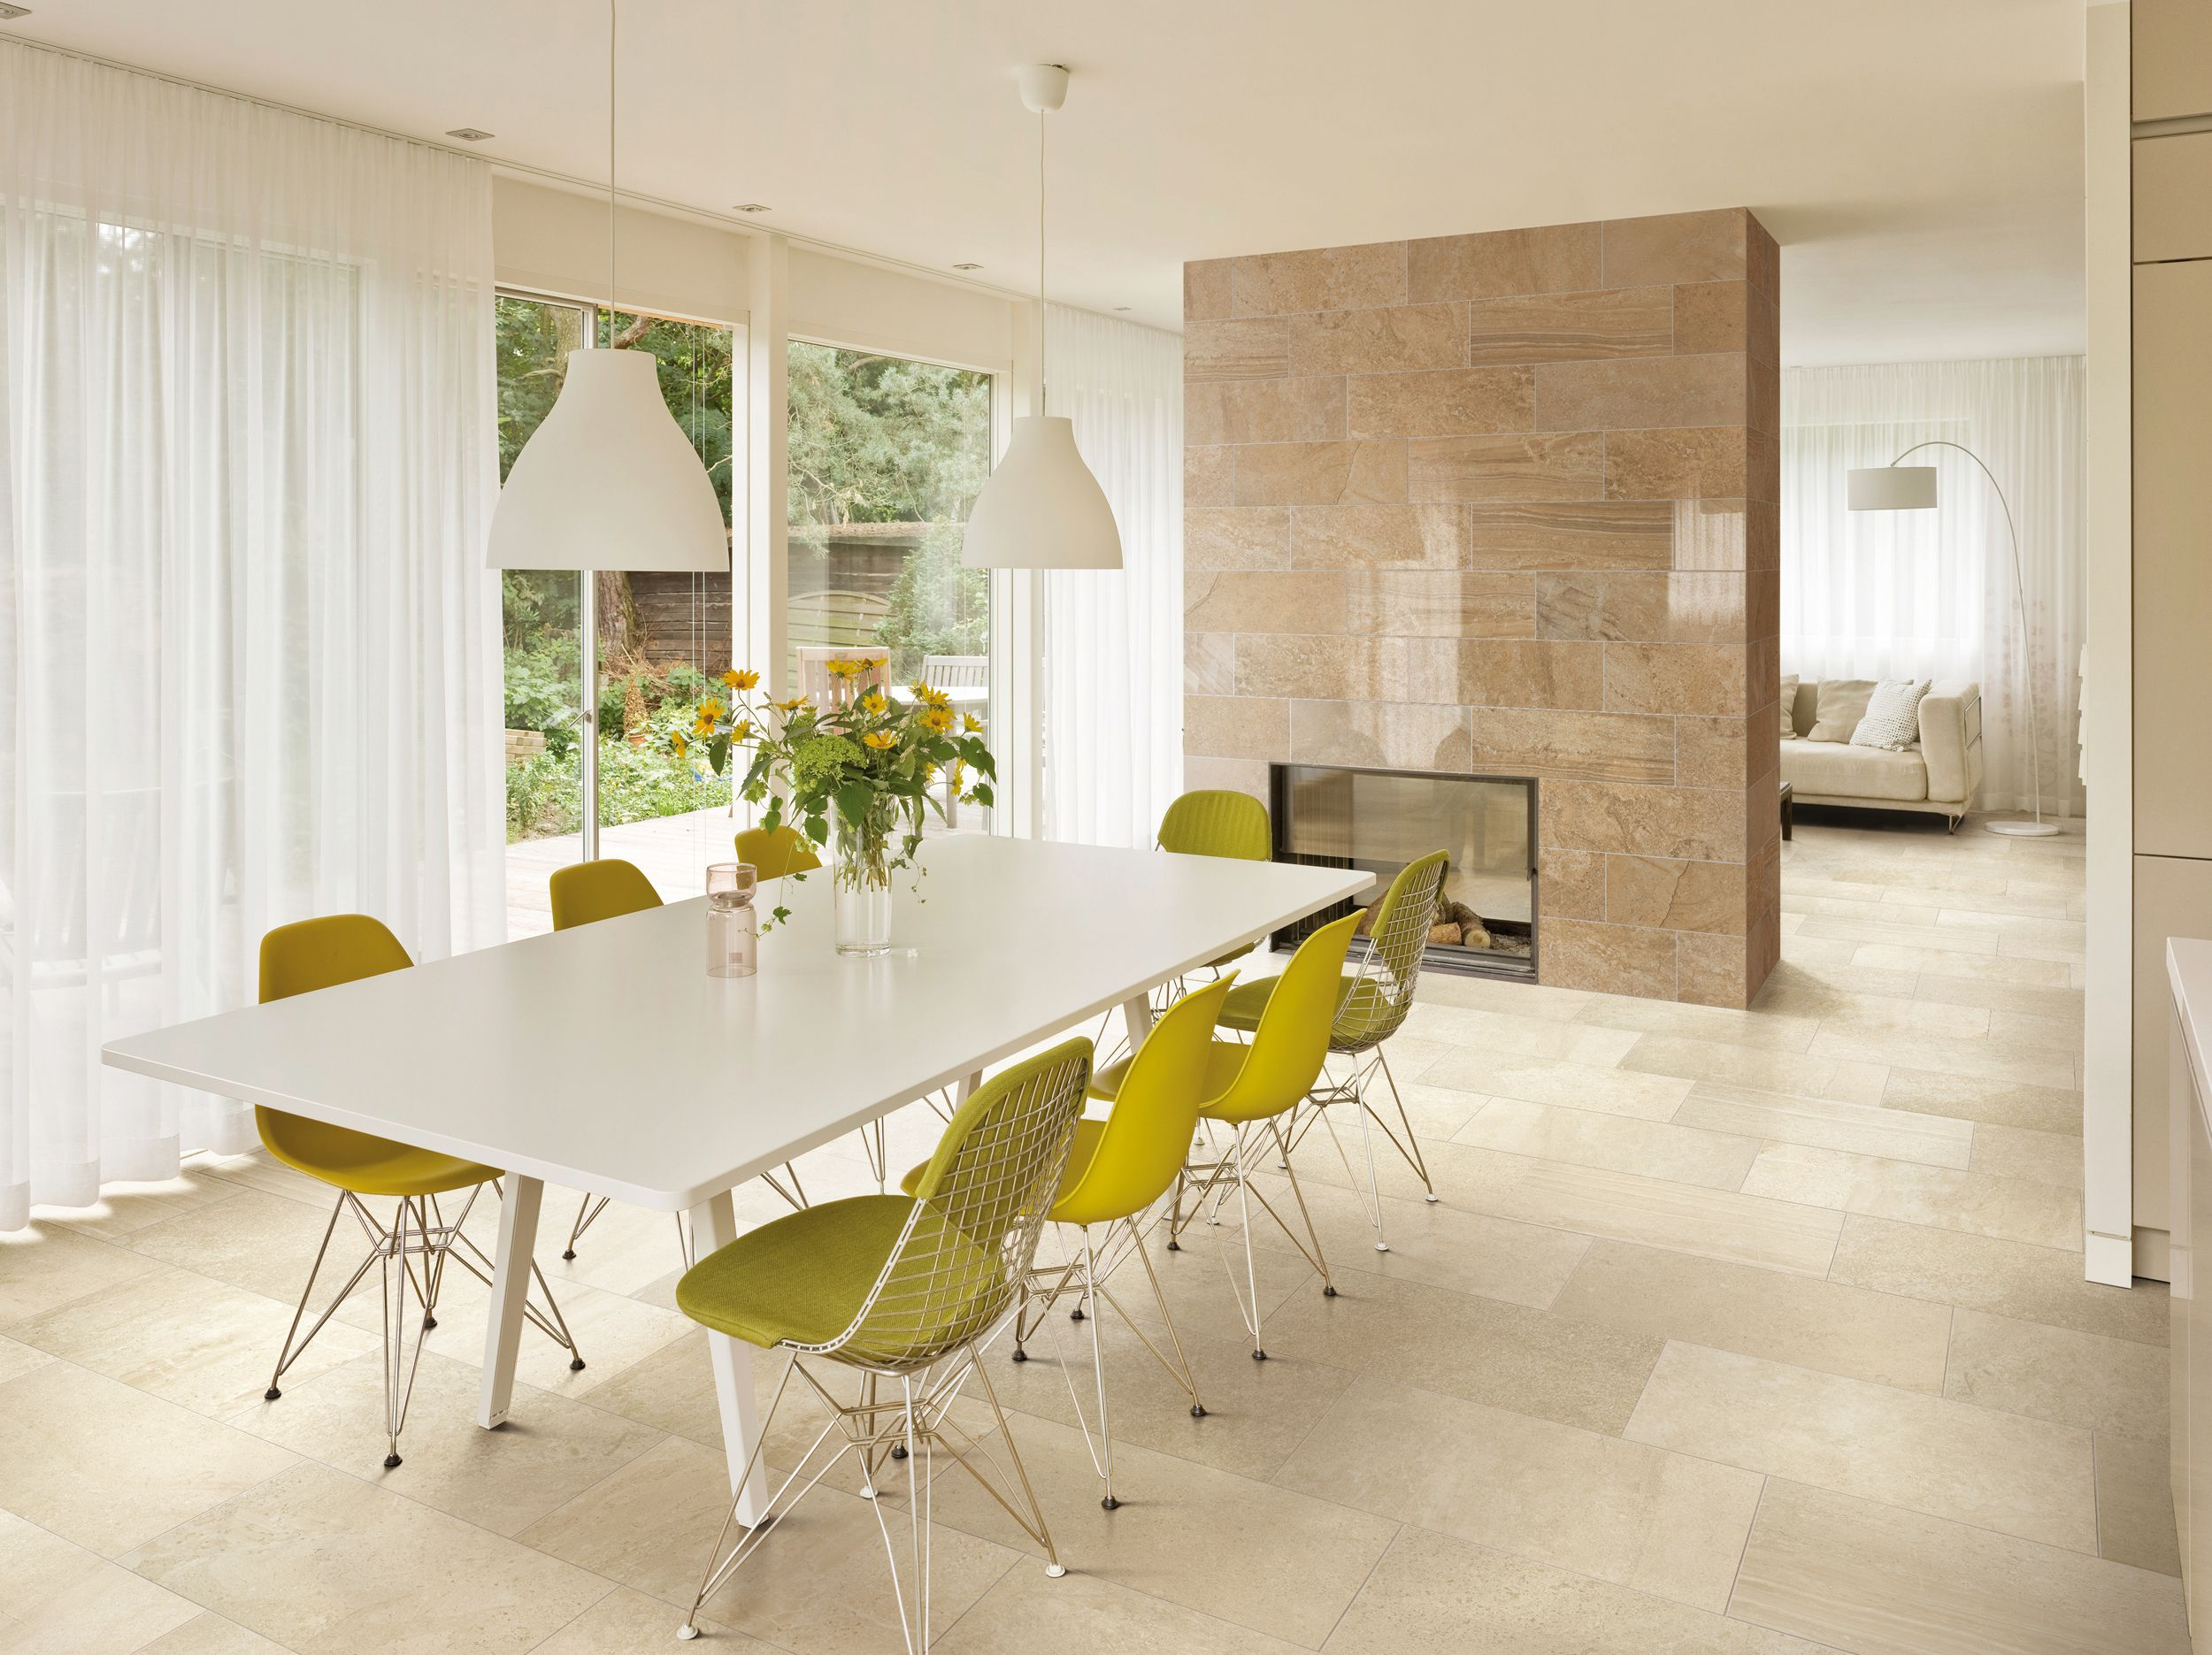 Sandstone Kitchen Floor Tiles Selection Beige Ceramiche Refin Spa Stone Effect Porcelain